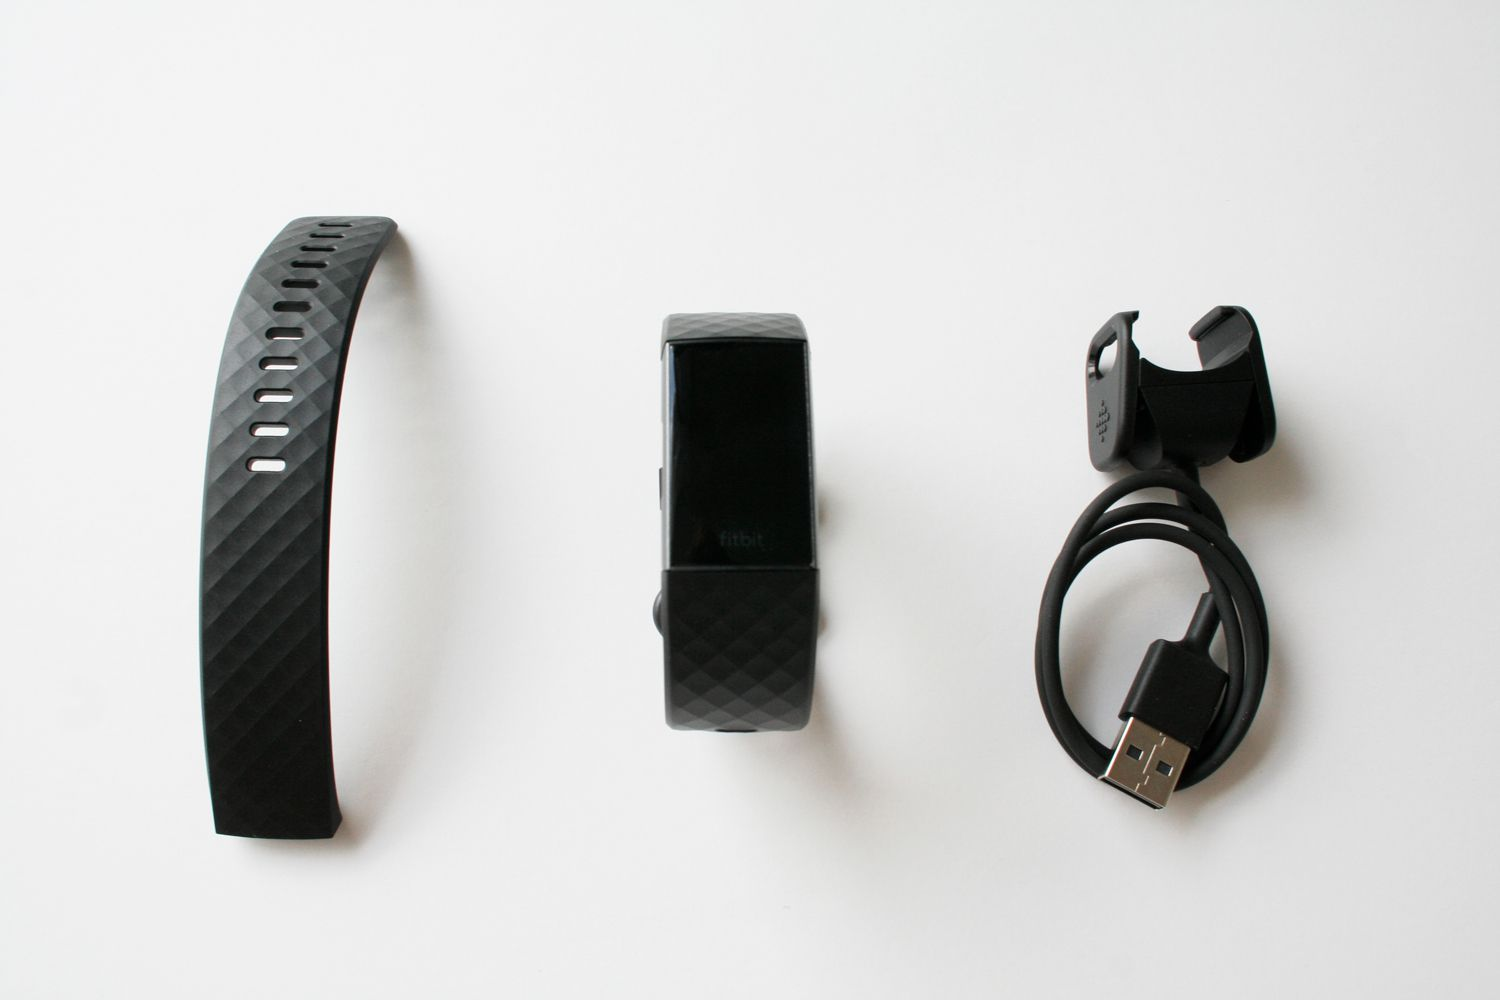 Fitbit Charge 3 Fitness Tracker